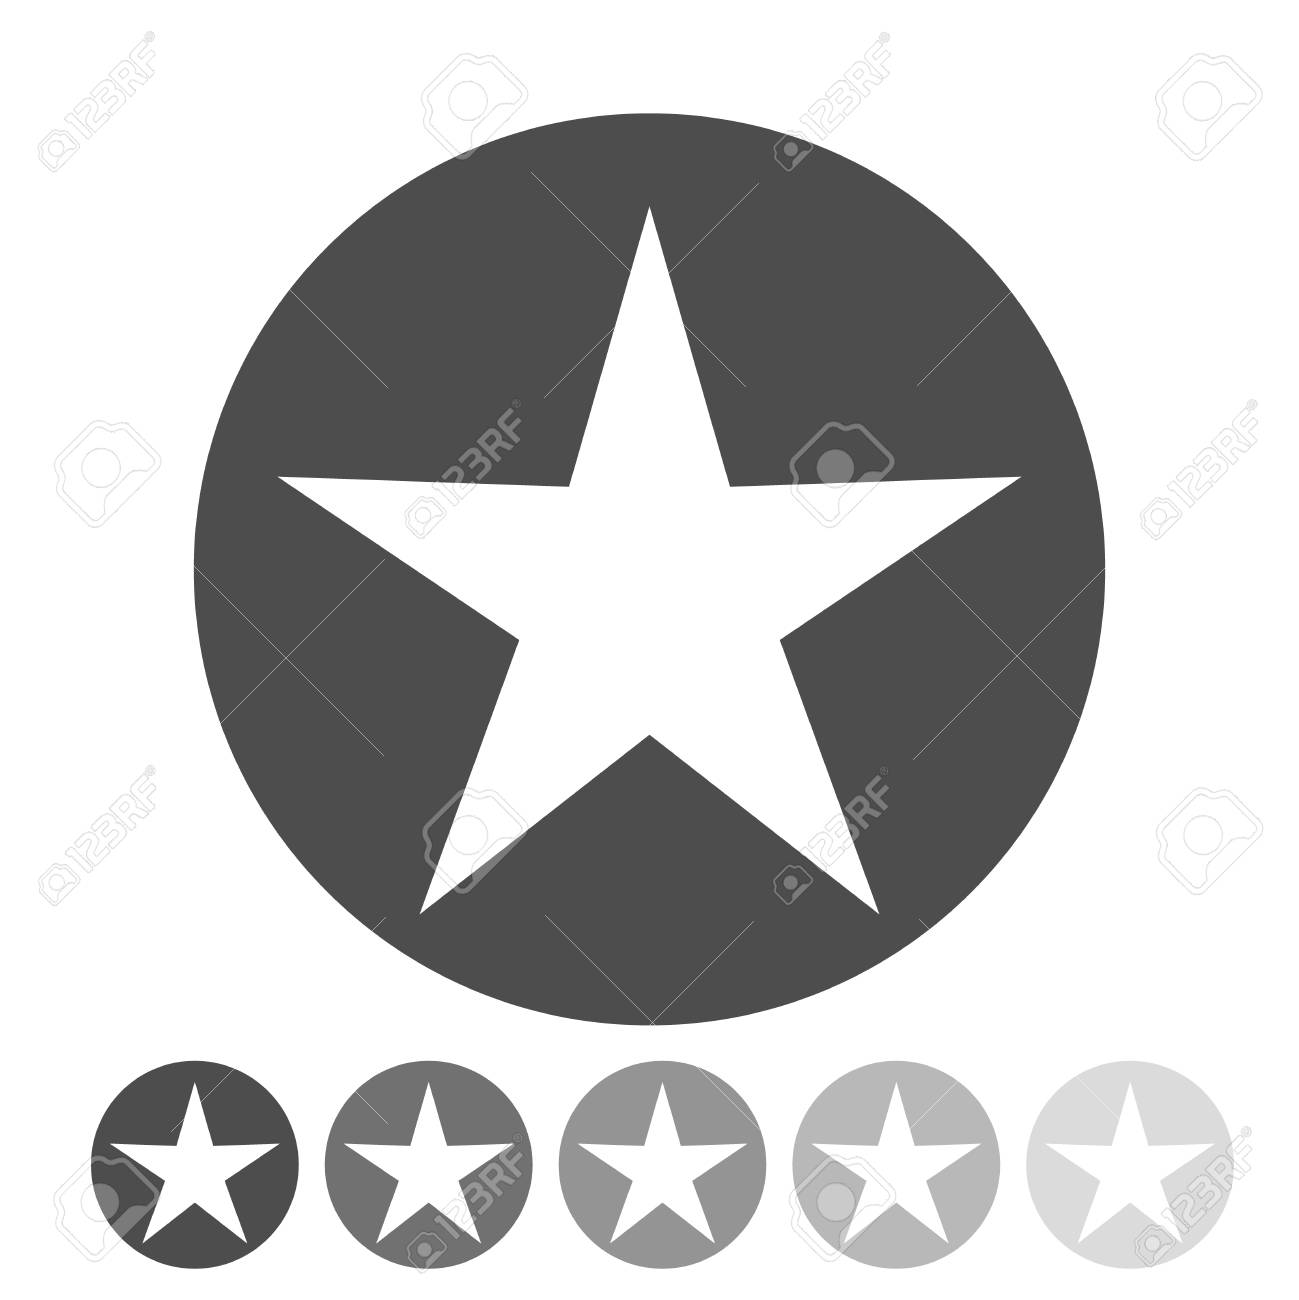 Isolated Gray And Black Star Icon Ranking Mark Modern Simple